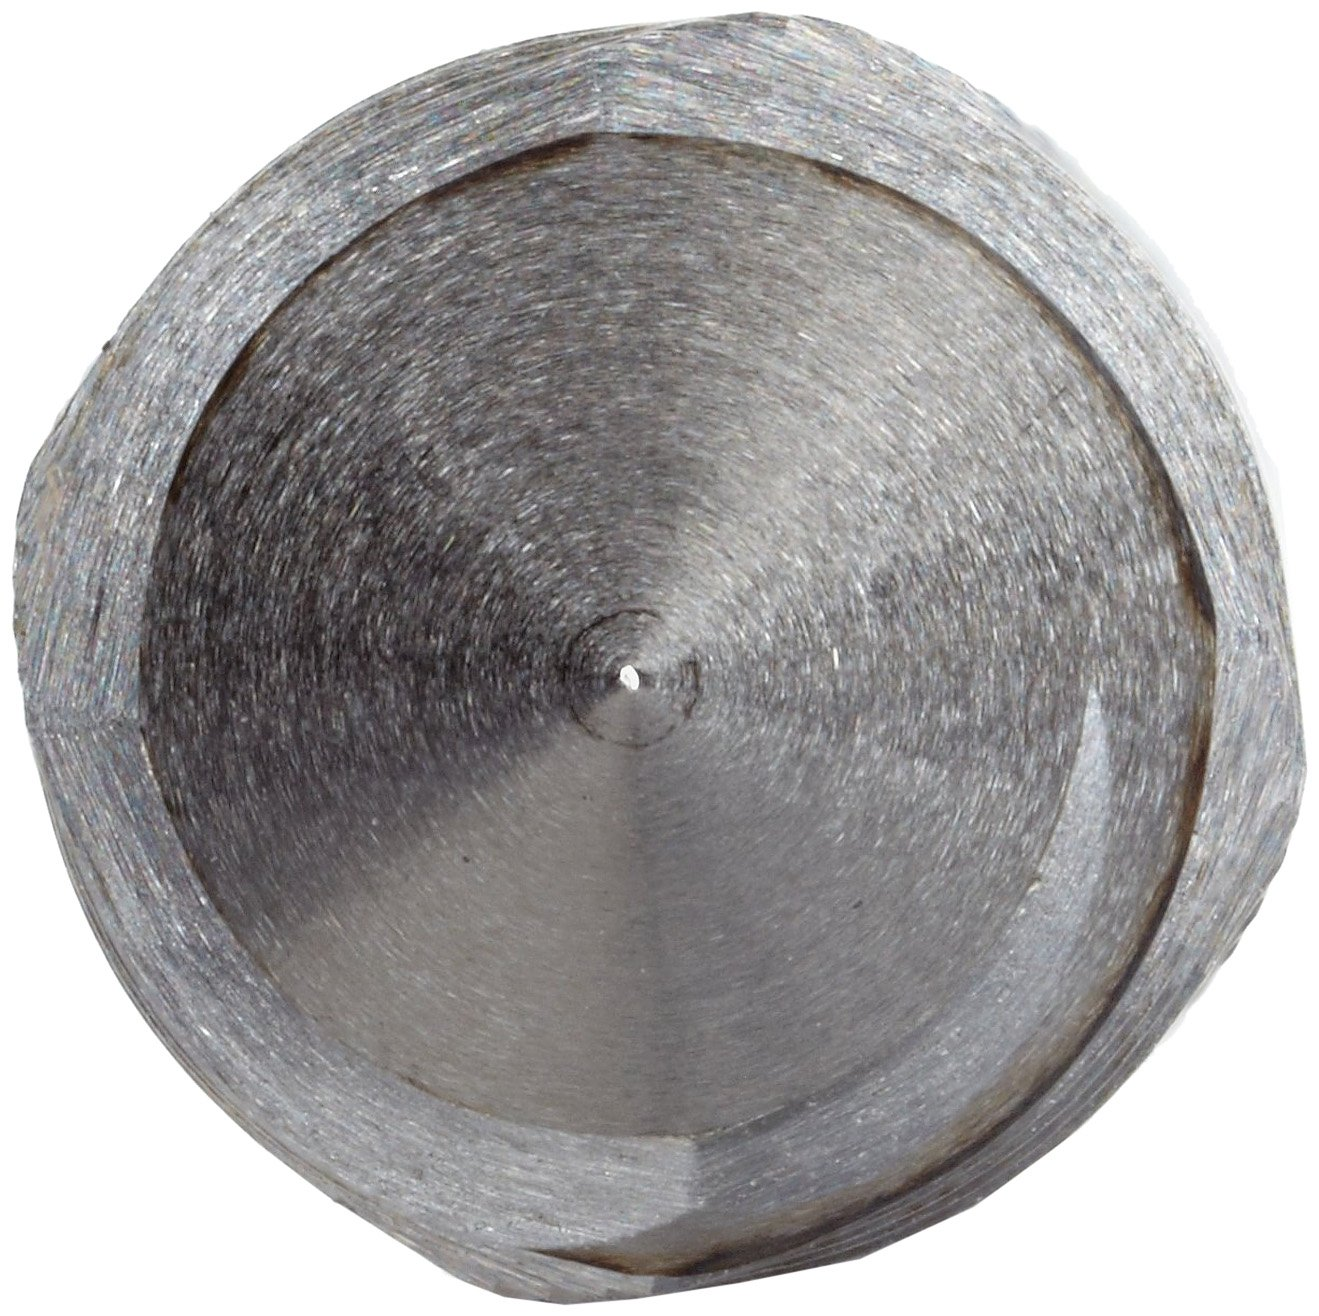 UNF Uncoated H7 Tolerance High-Speed Steel Thread Forming Tap Finish 5//16-24 Thread Size 5//16-24 Thread Size Precision Dormer 1310085 Bottoming Chamfer Bright Union Butterfield 1580 Round Shank With Square End